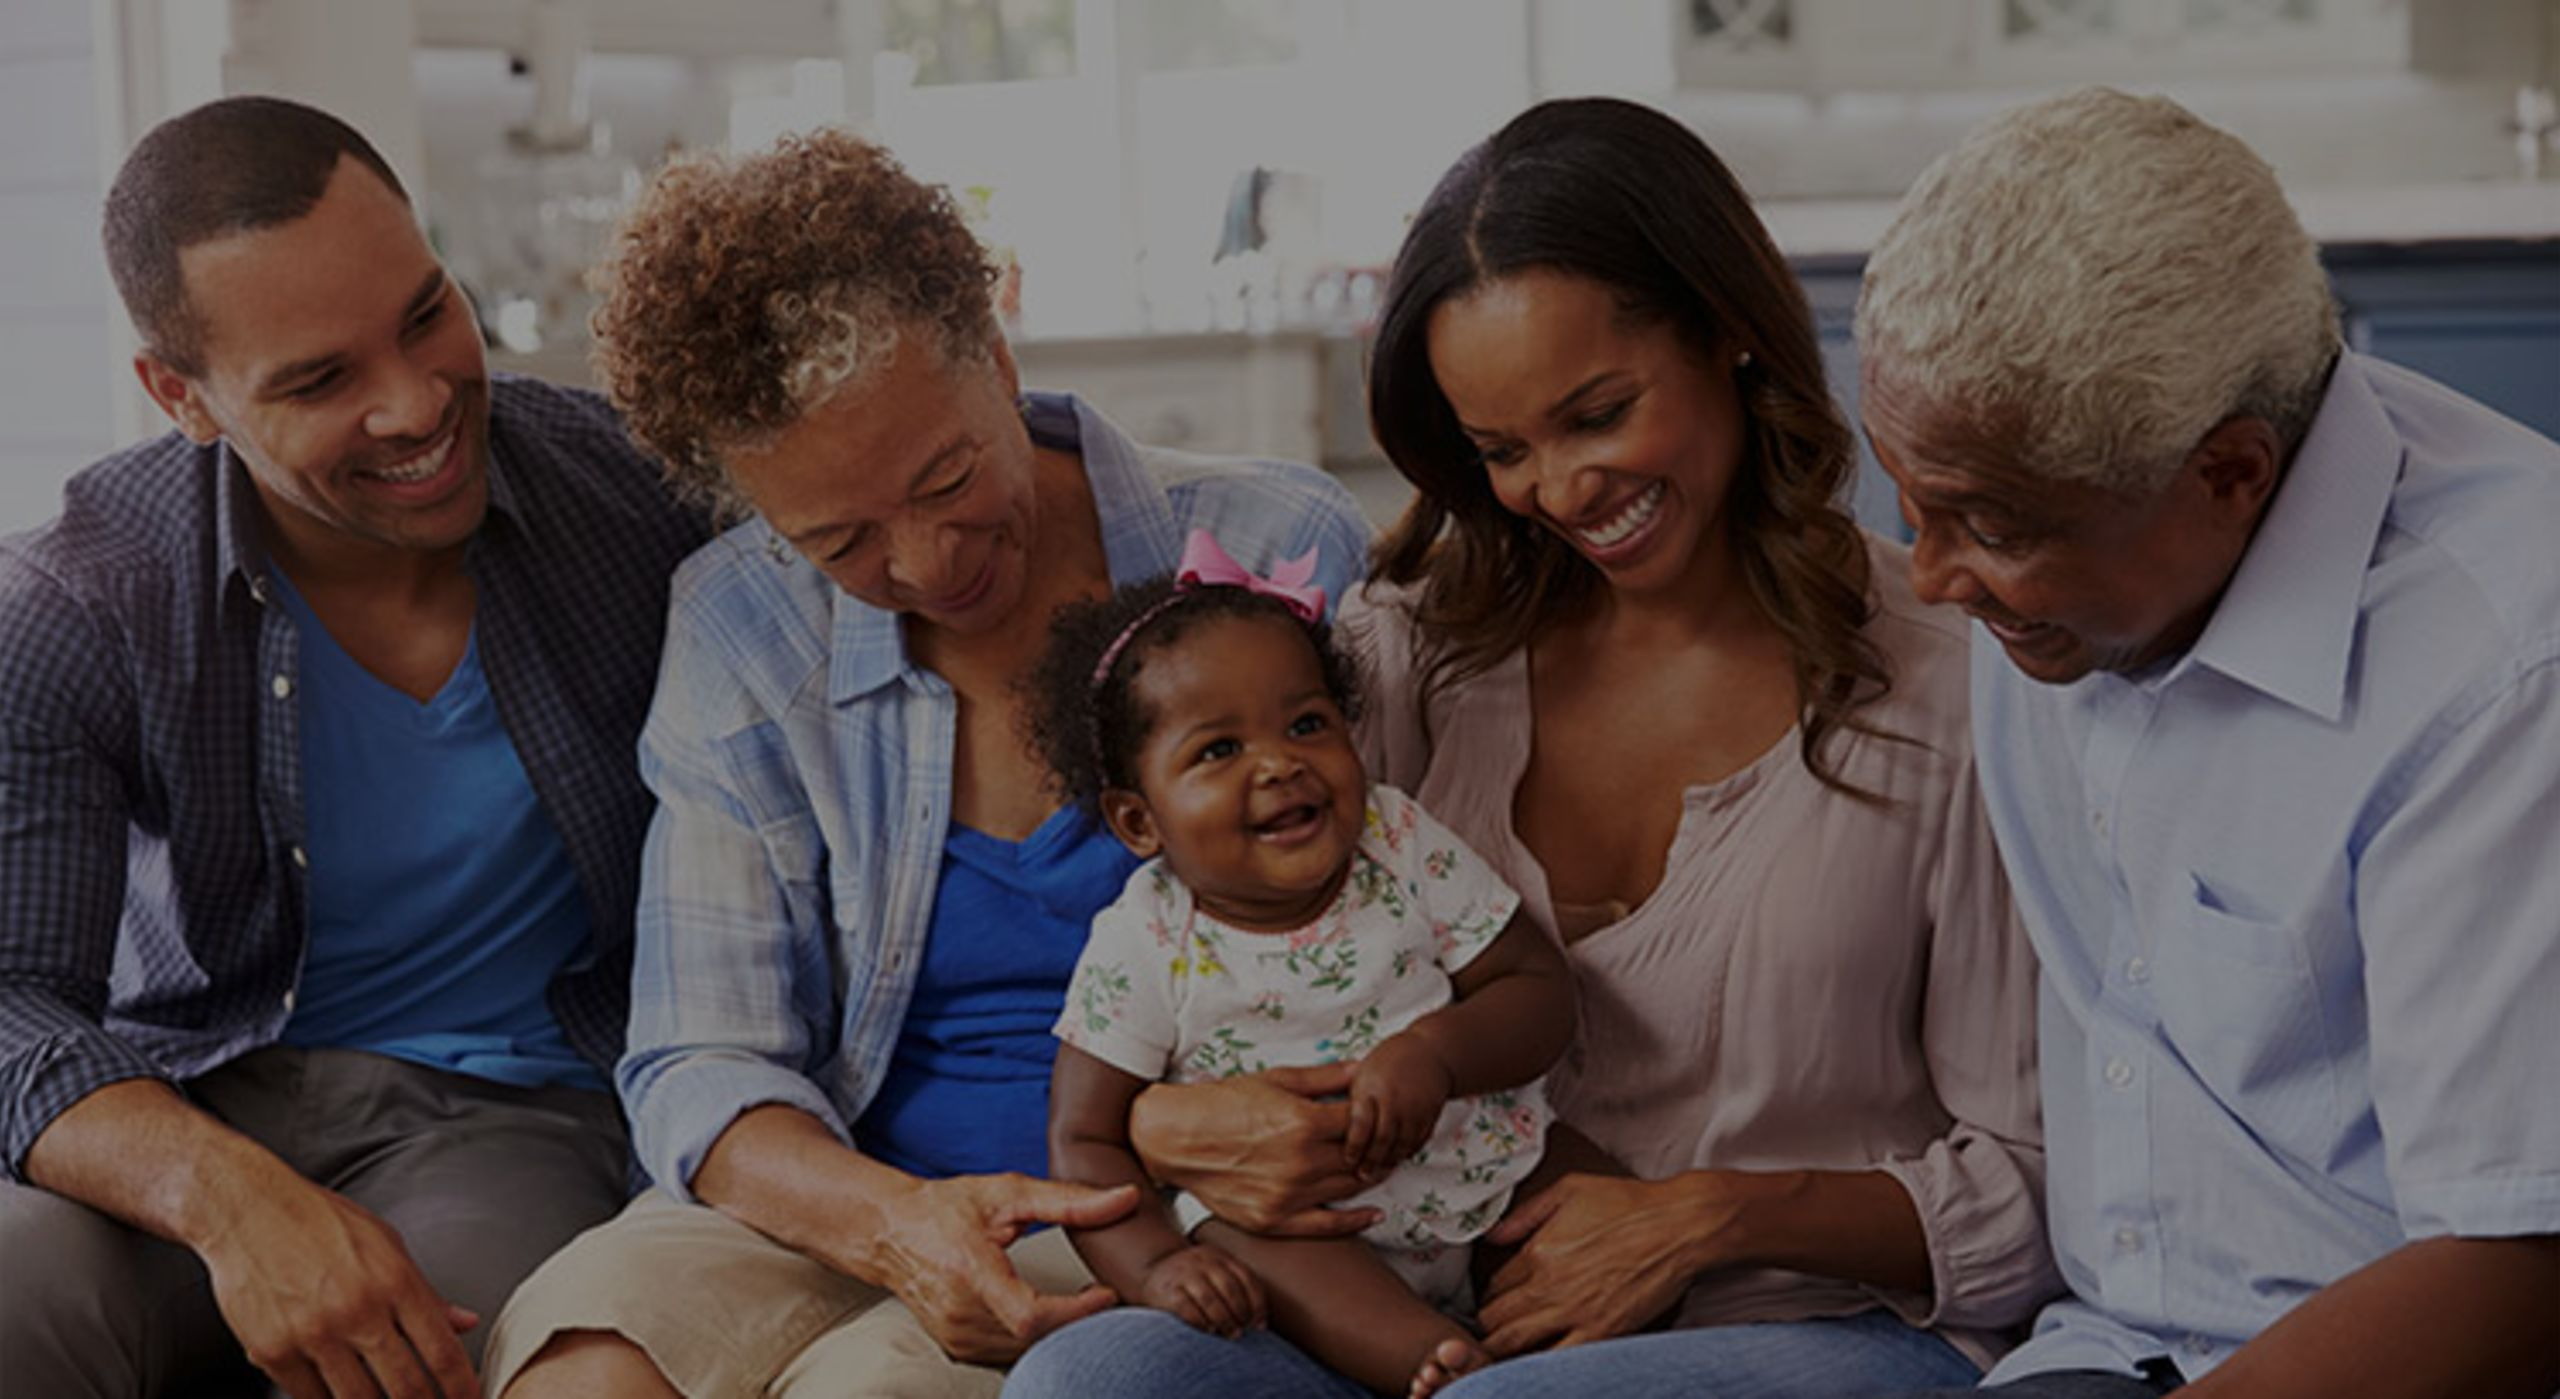 Multigenerational Households May Be the Answer to Price Increases